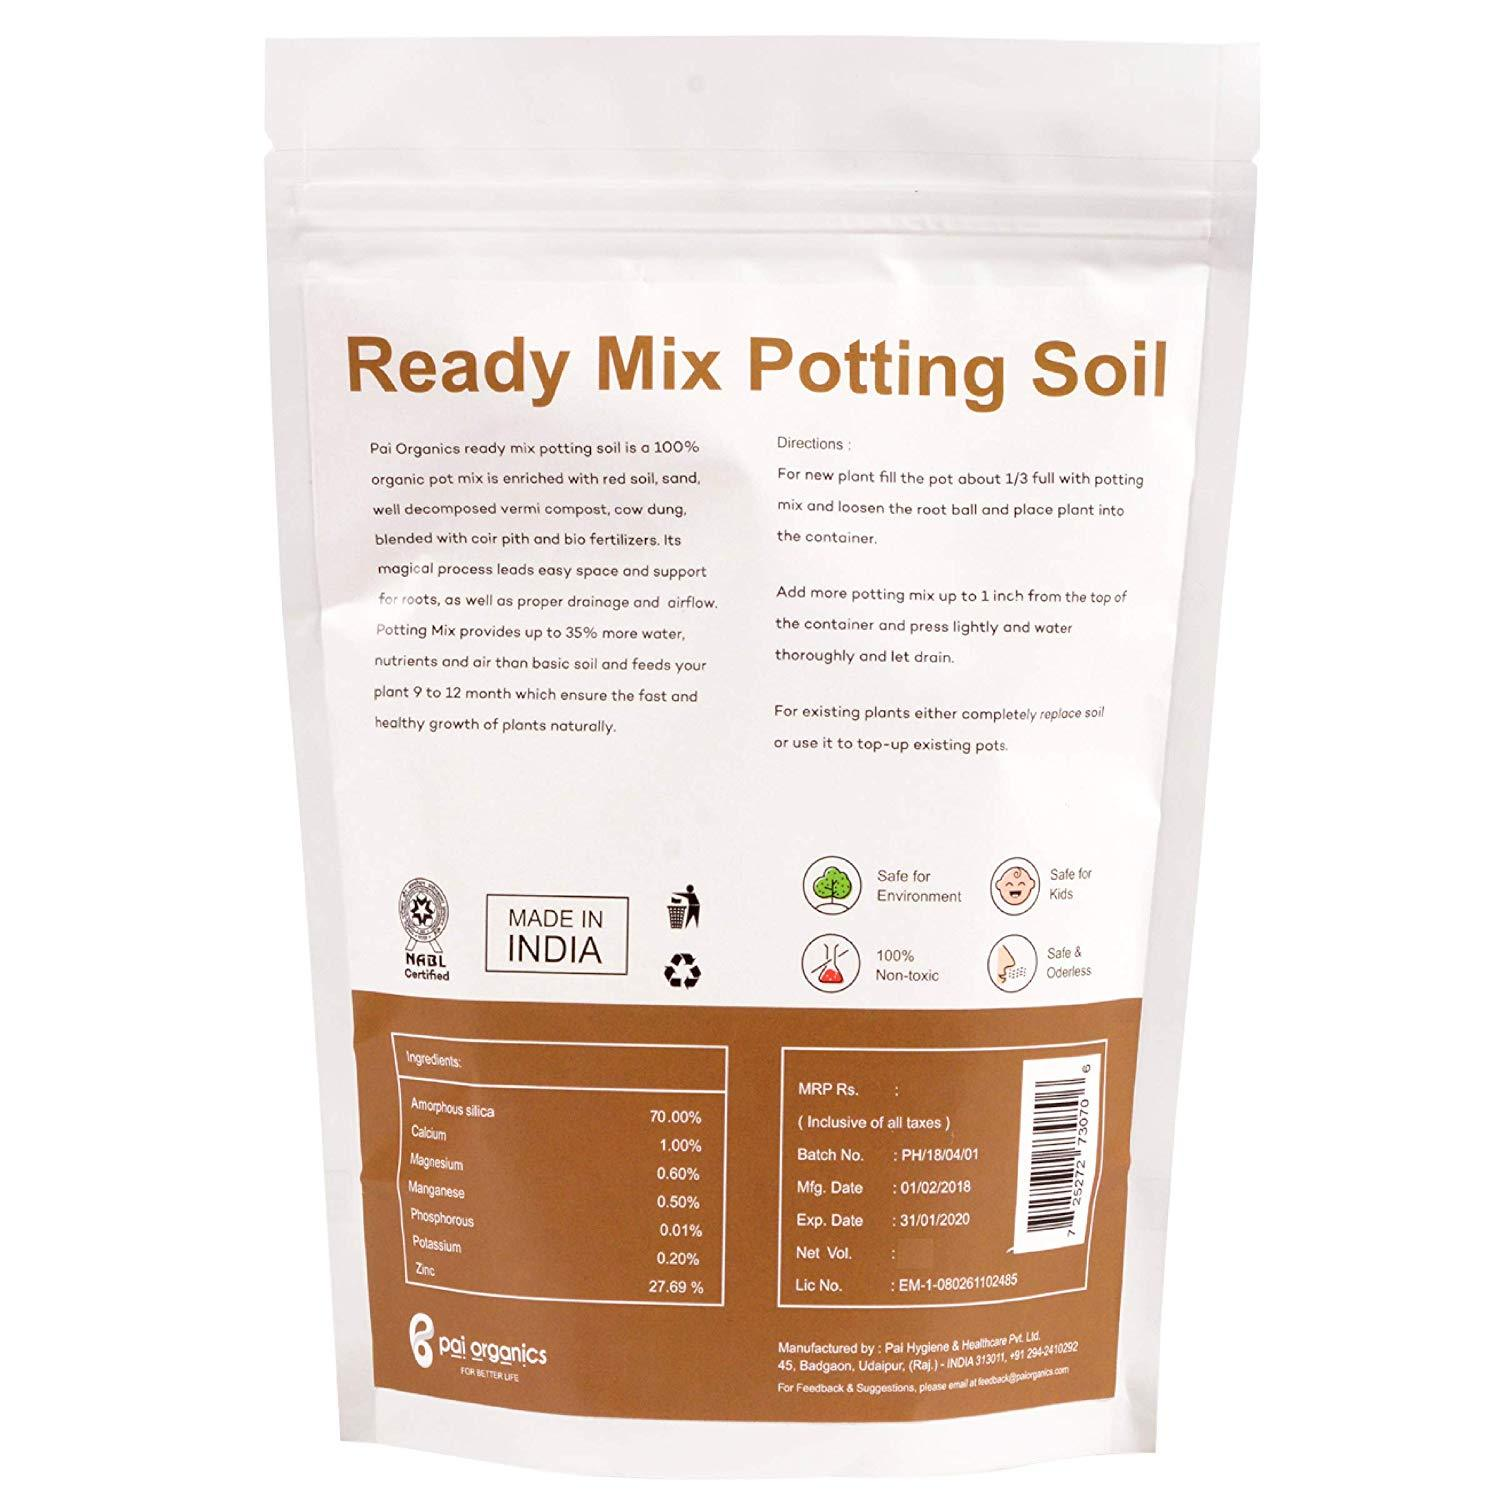 Organic - Ready Mix Potting Soil Organic Soil Booster For Plants Gardening Purposes, 1Kg Pack